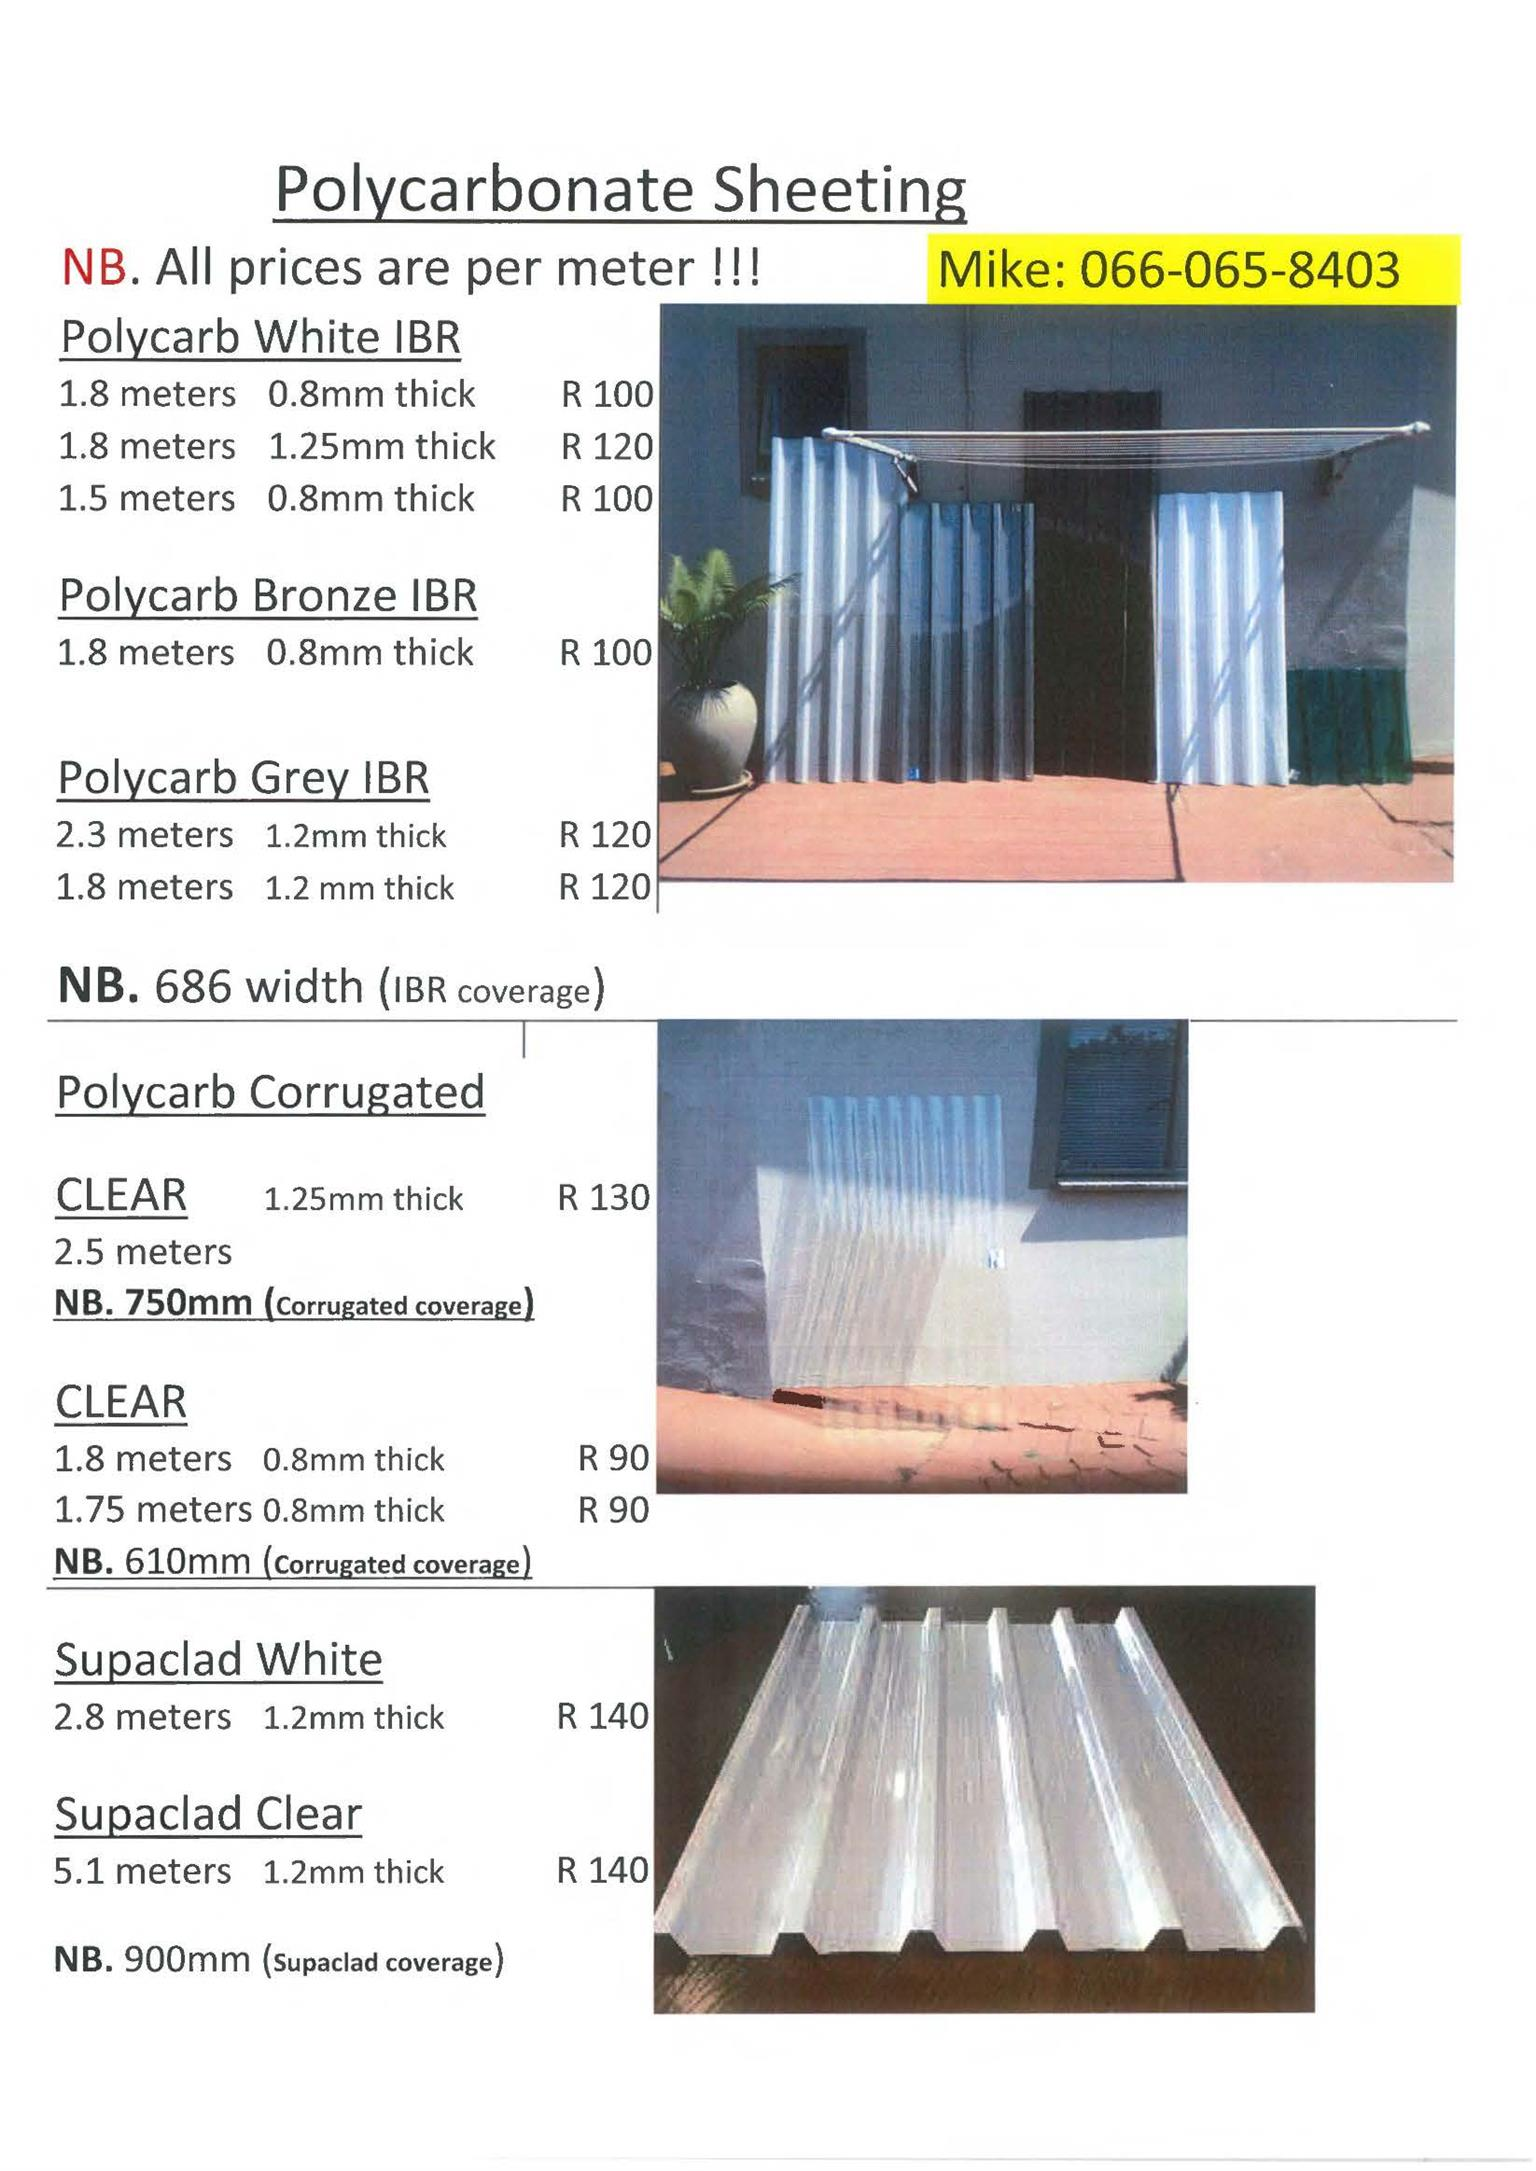 Polycarbonate Sheeting. Fibre glass sheting